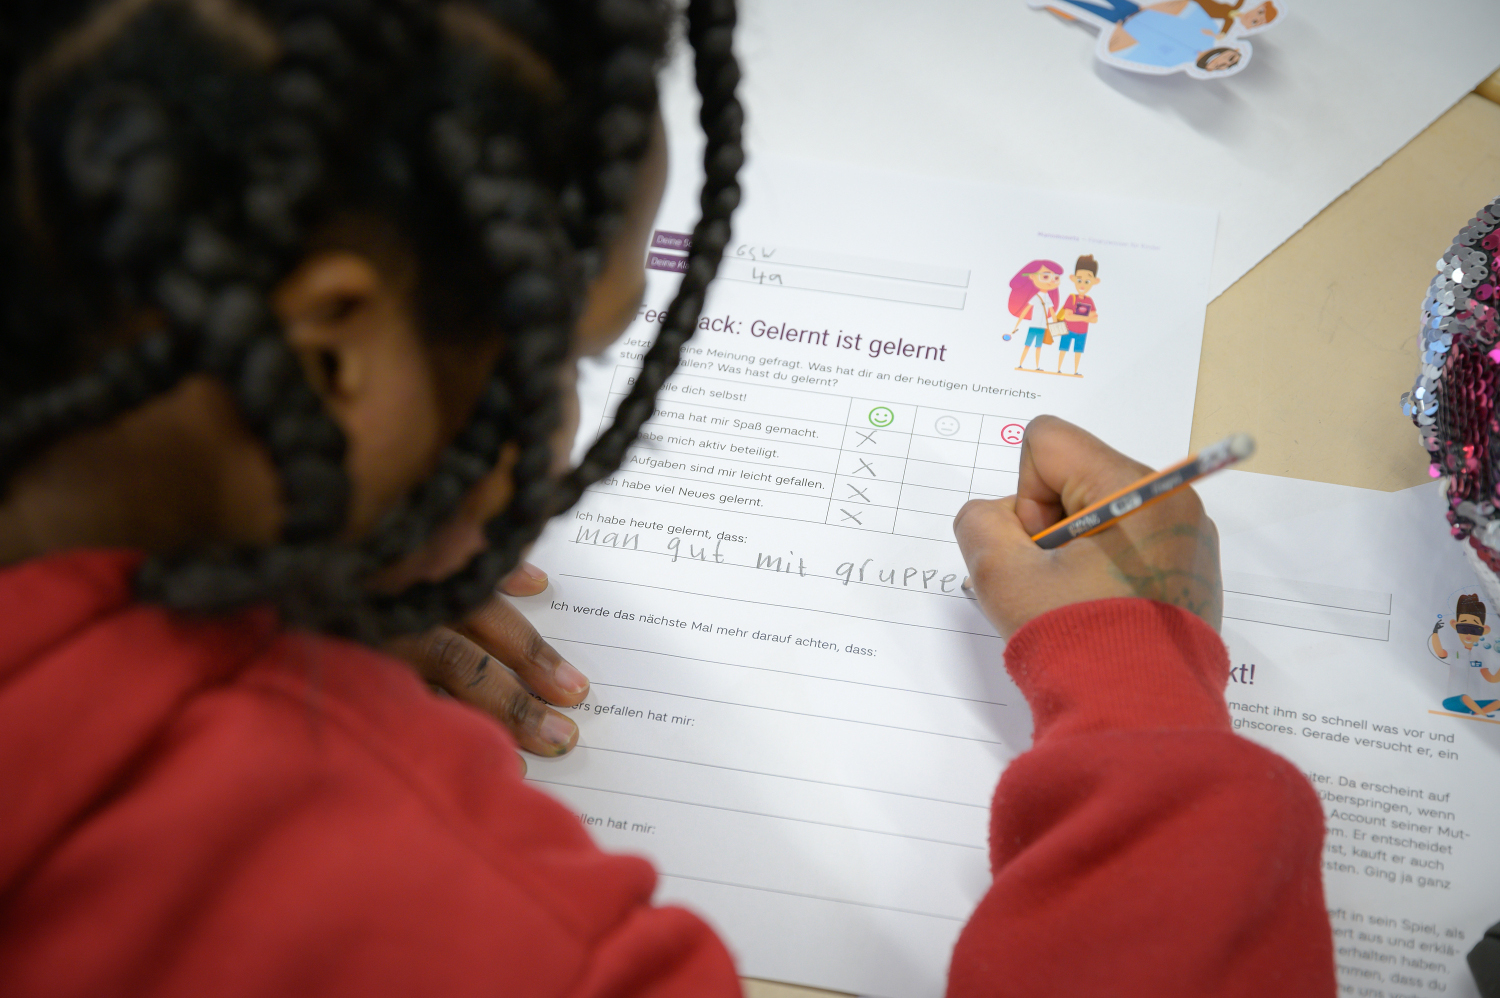 Financial education for children: Child completes a feedback form on the finlit initiative.